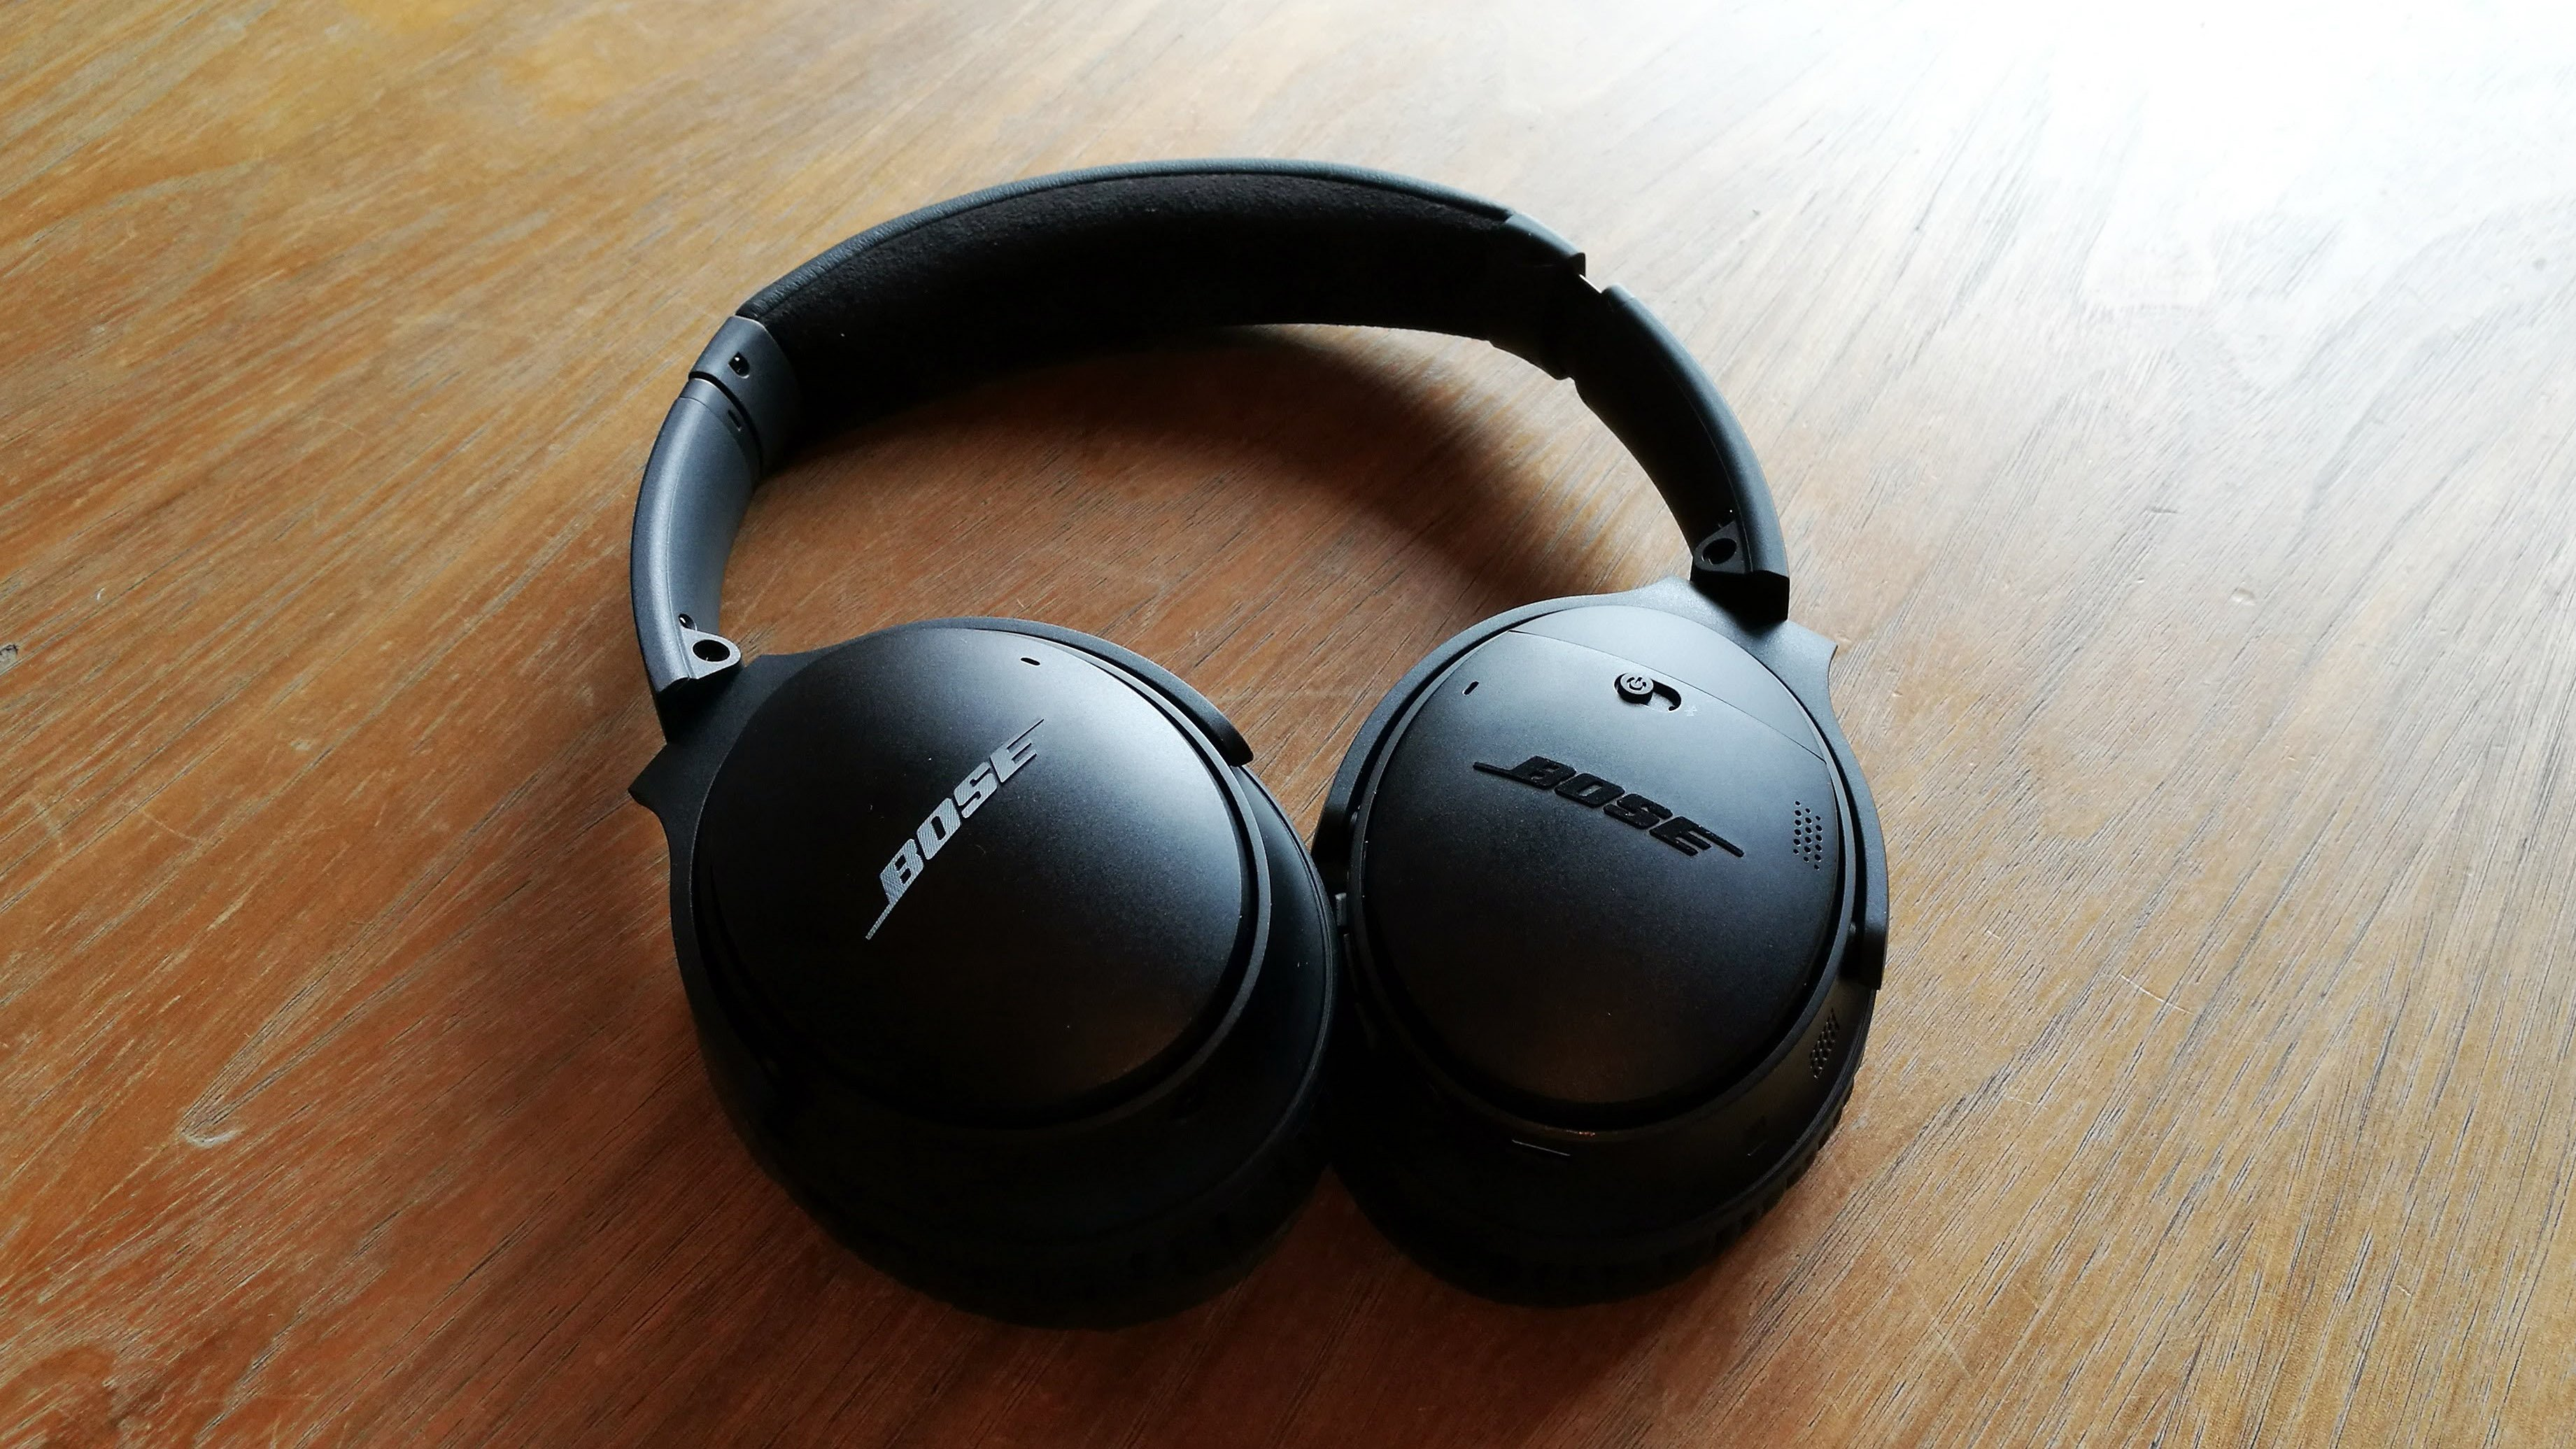 Bose QuietComfort 35 (series 1) review: A classic design